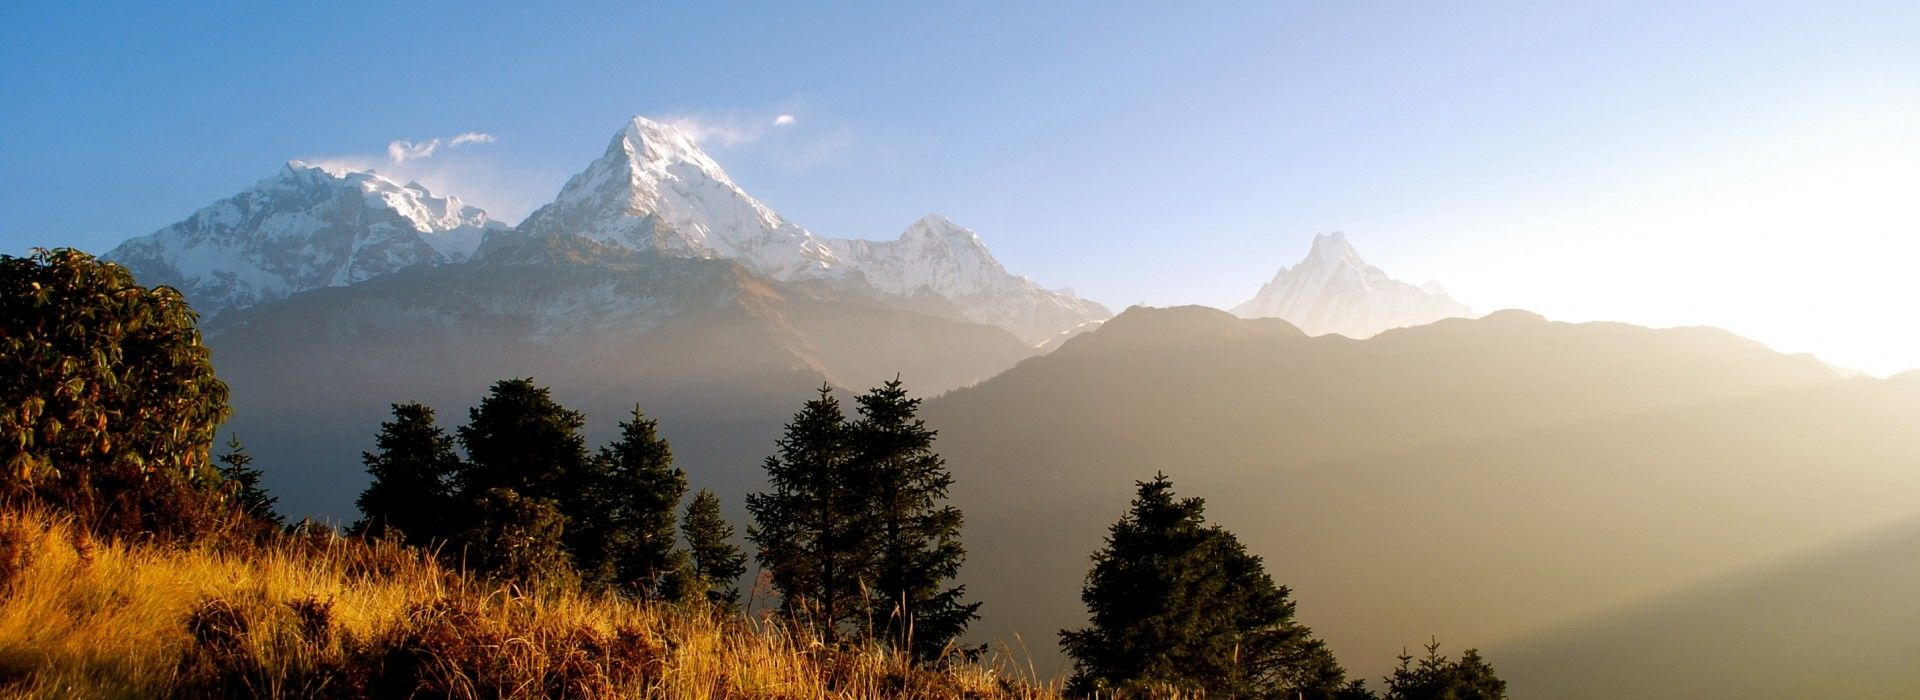 Helicopter Tours in Everest Region